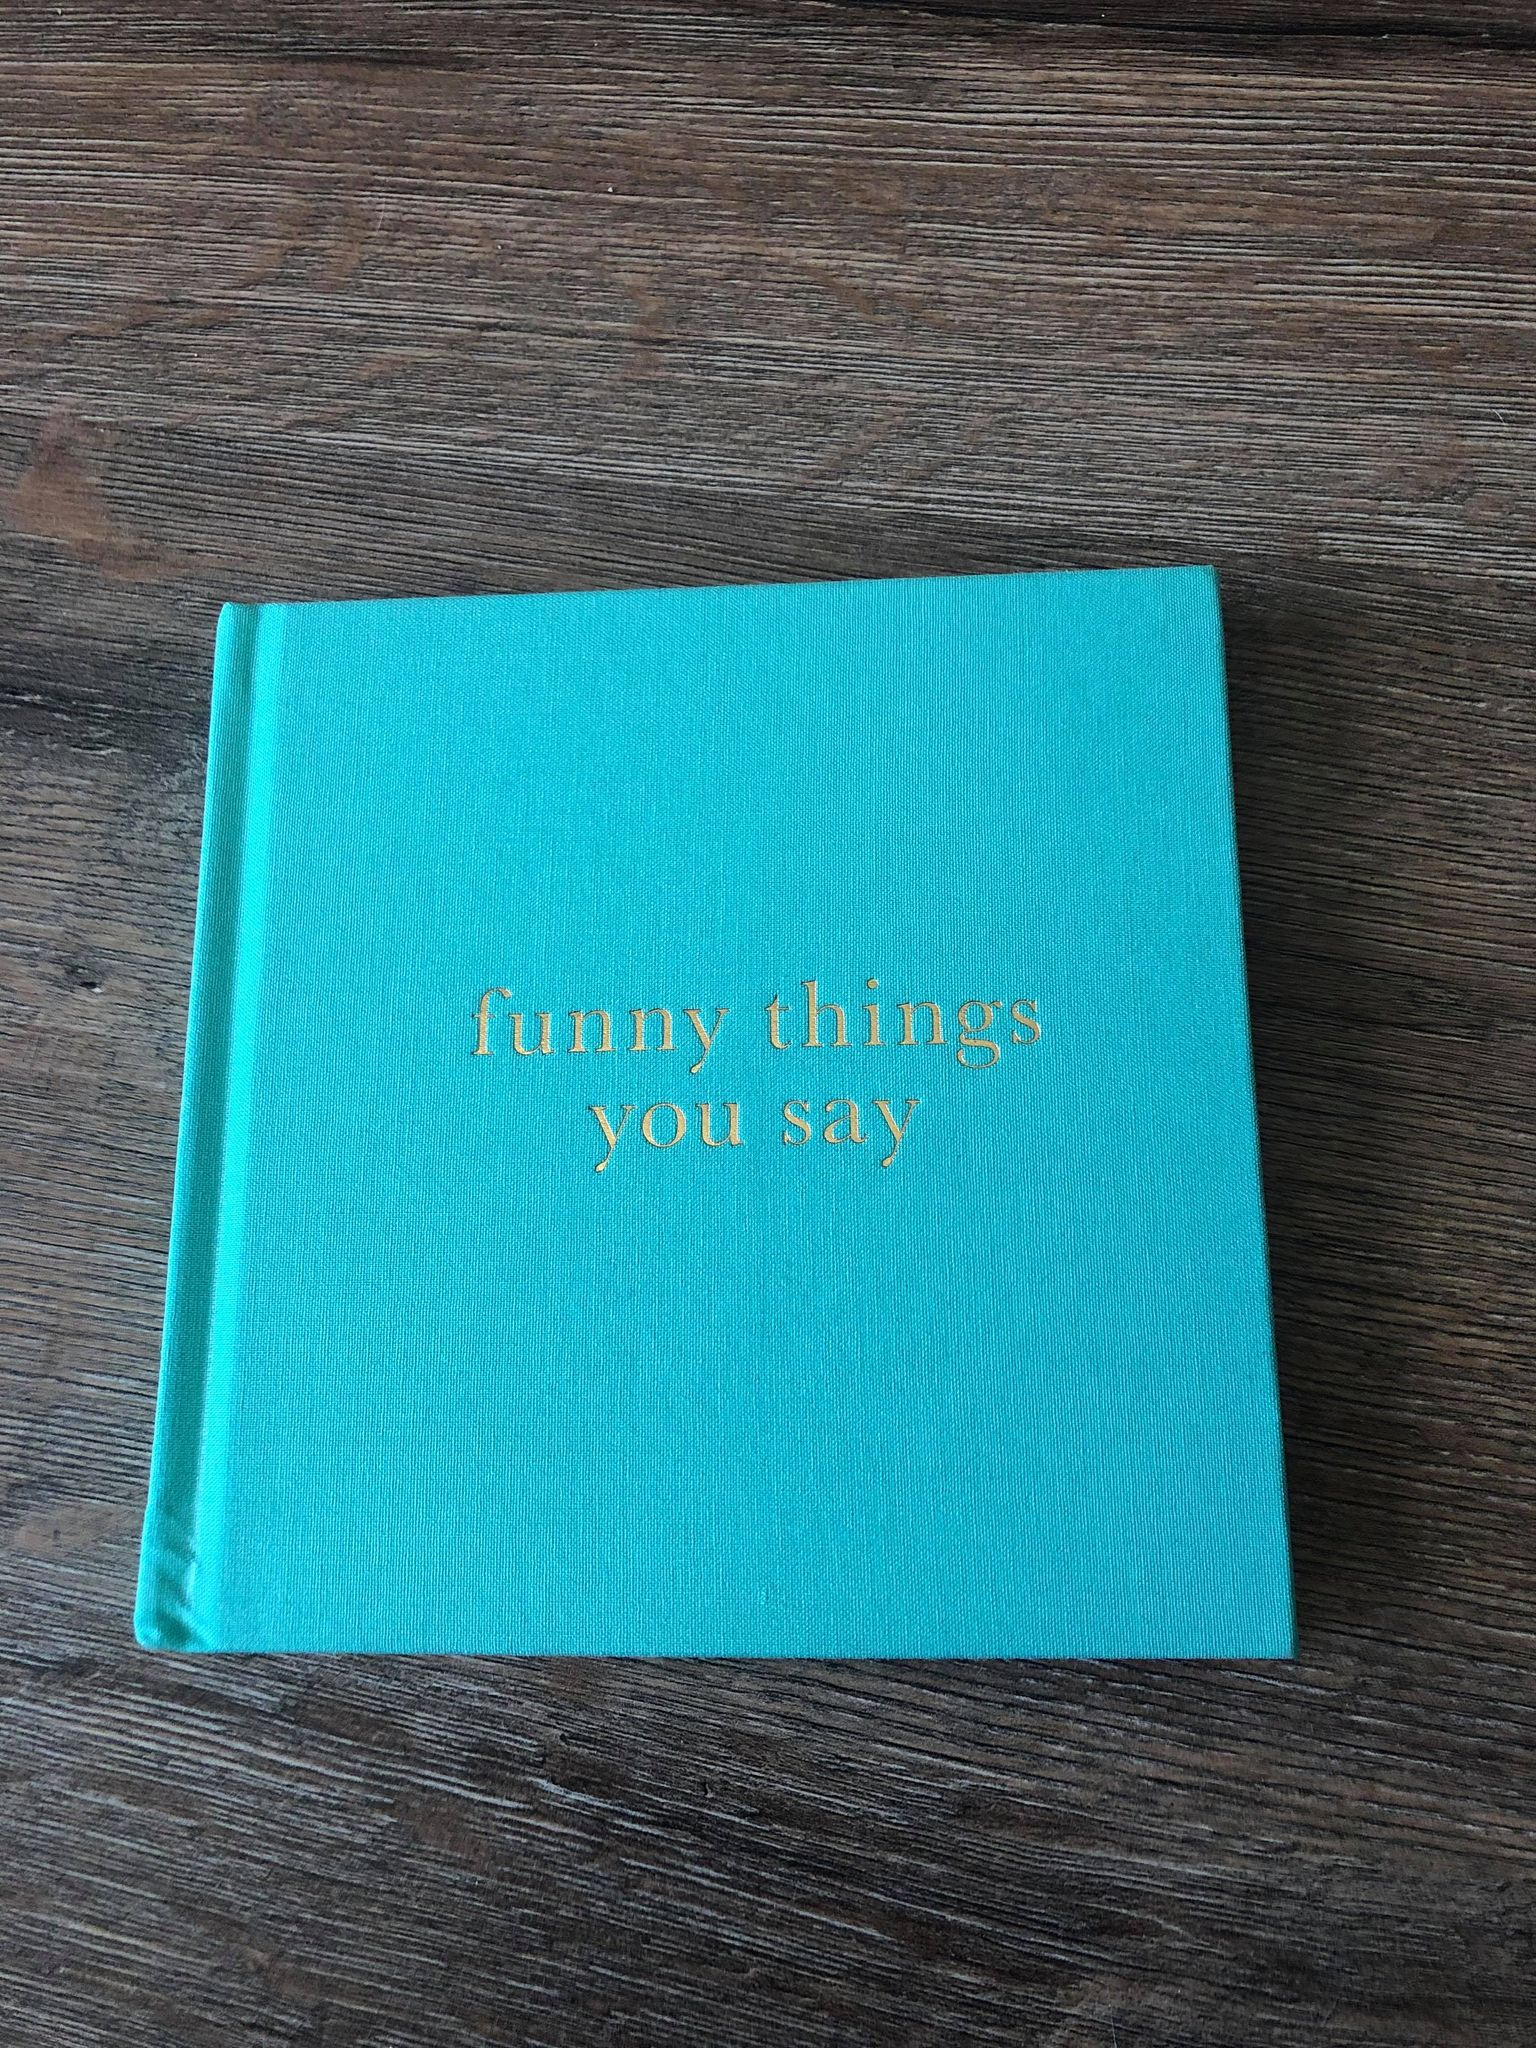 funny things you say baby book david jones-baby shower gifts